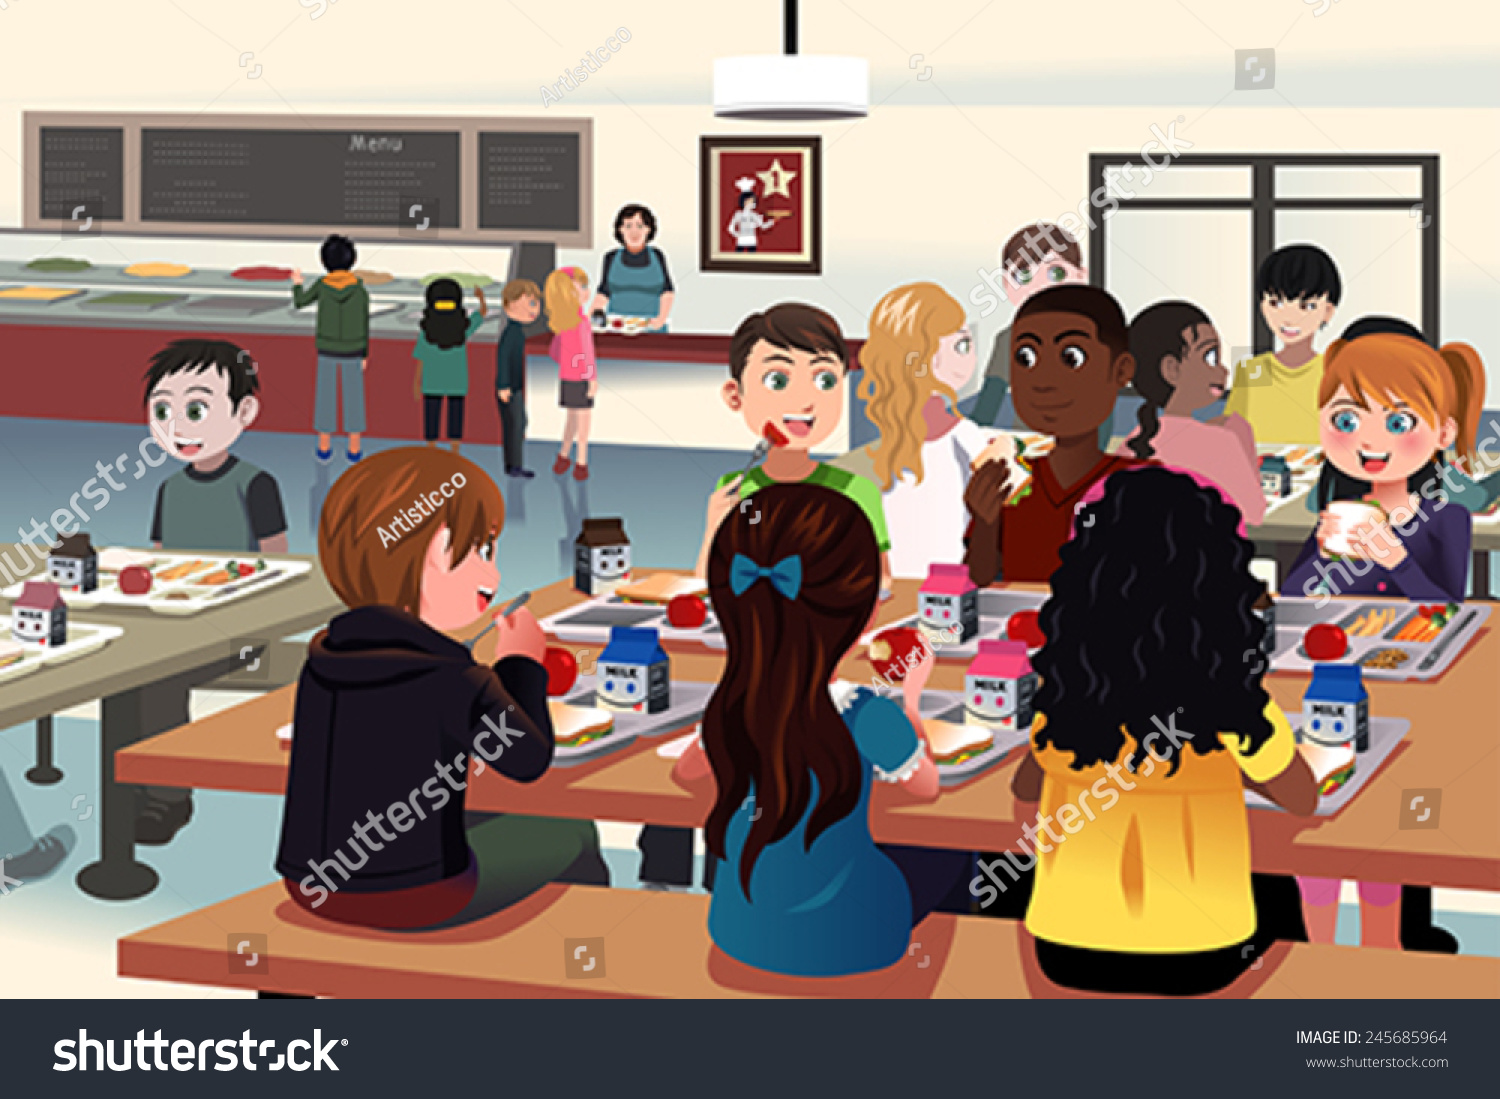 vector illustration kids eating school cafeteria stock vector